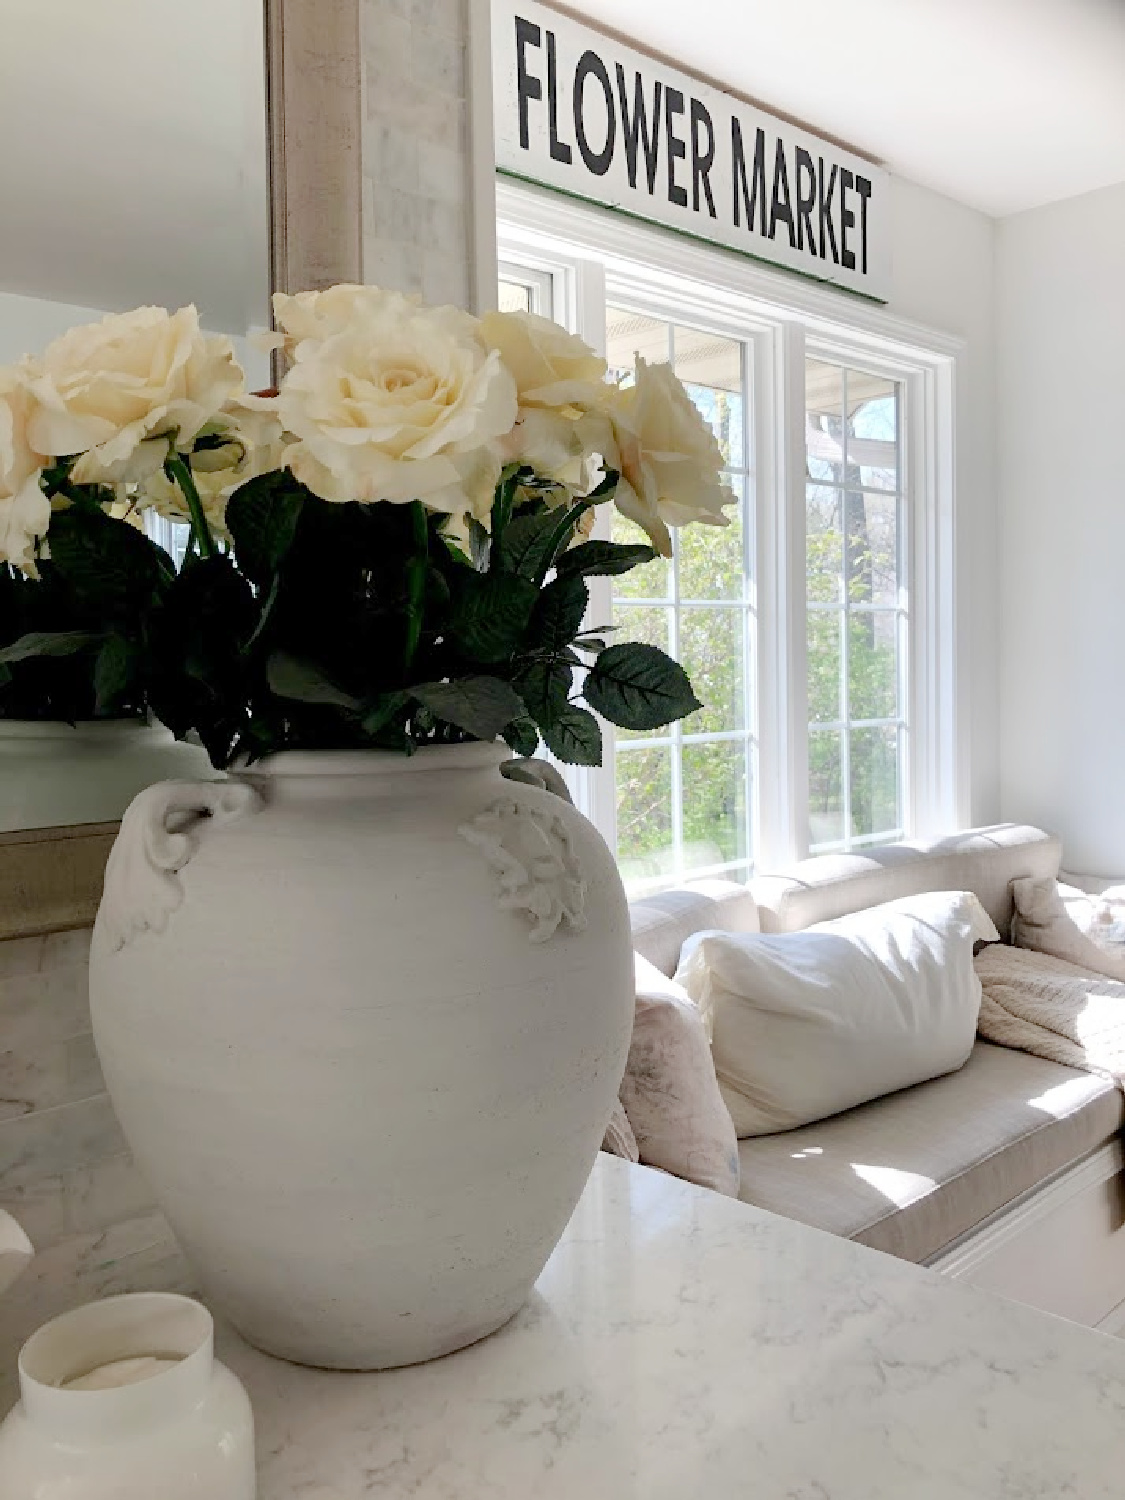 White roses in an antique white urn on my counter in the kitchen with window seat - Hello Lovely. #serenedecor #whiteroses #modernFrench